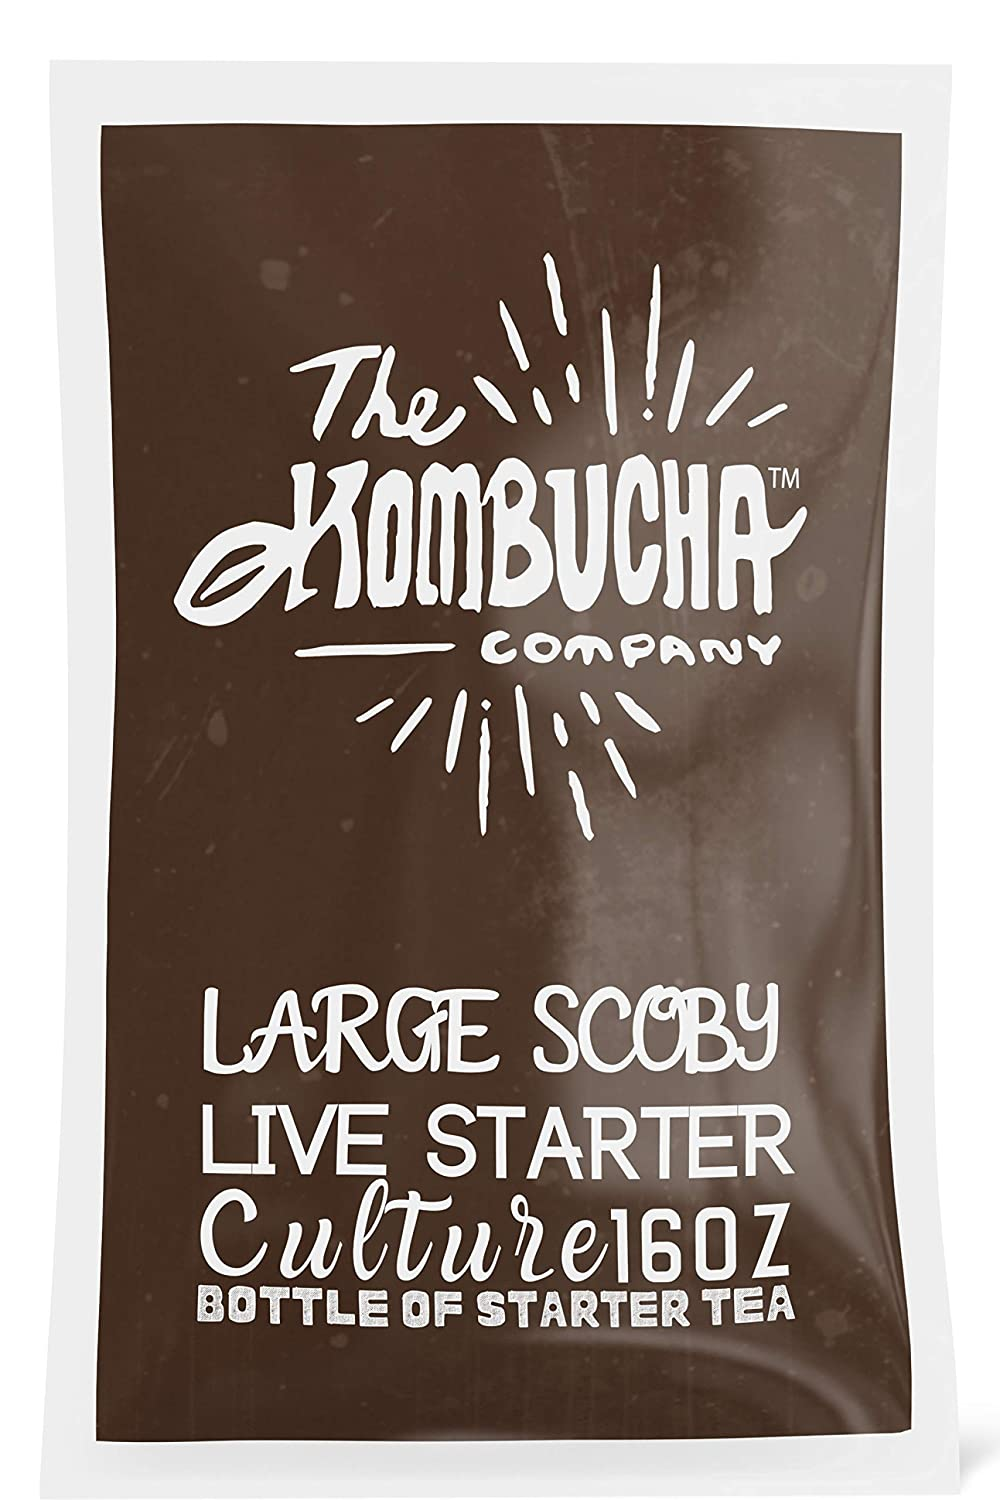 The Kombucha Company Large Scoby Starter Kit – 16 oz Bottle Liquid Organic Live Culture for Brewing 1 Gallon of Homemade Kombucha Tea – with Filtered, Purified Rainwater, Black Tea and Yerba Mate